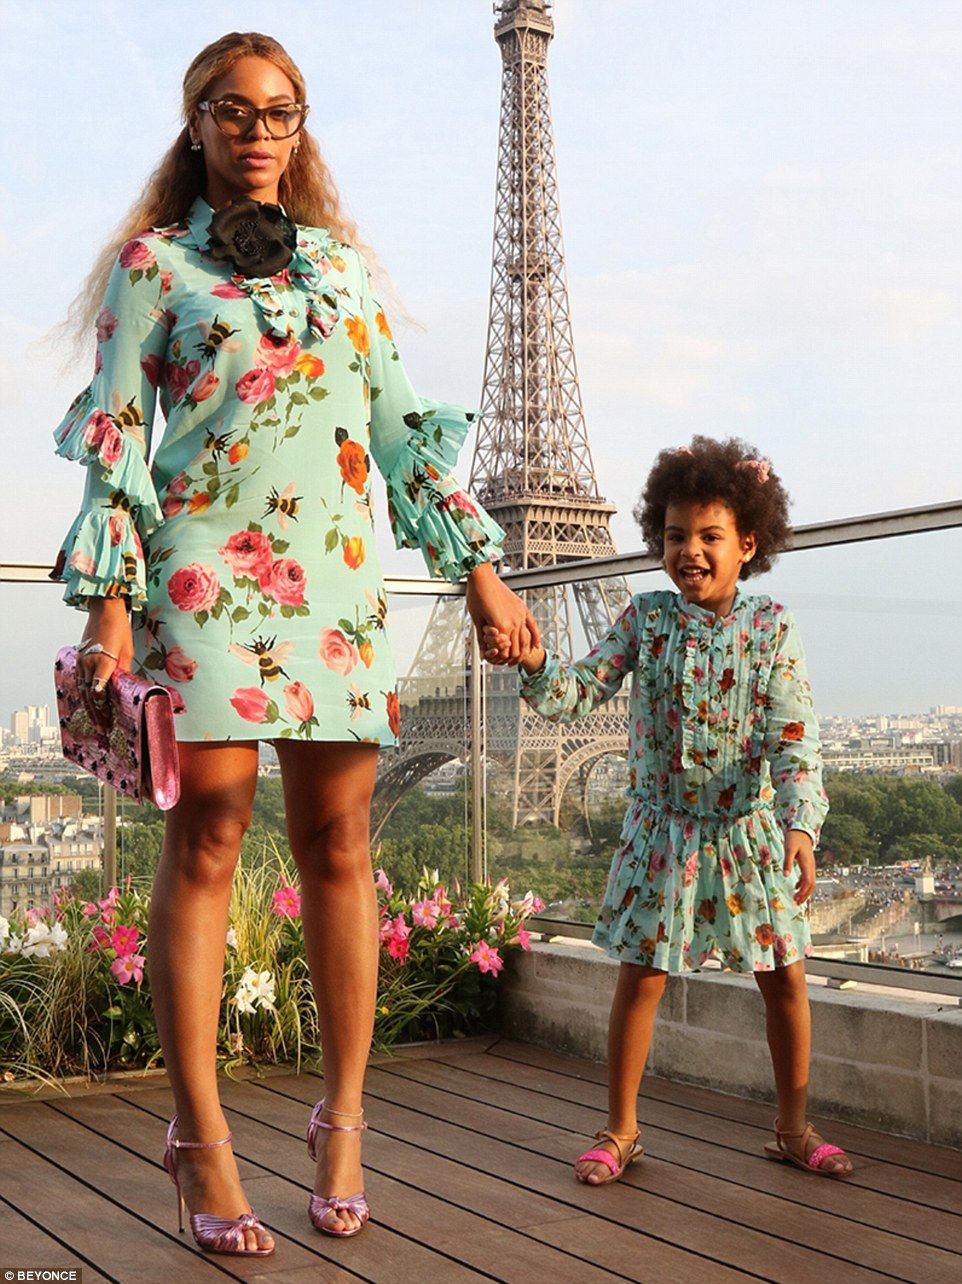 bd30585bee Peppy in Paris  Beyonce and her spirited daughter Blue Ivy posed on the  terrace of their Paris lodgings that overlooked the Eiffel Tower in Paris